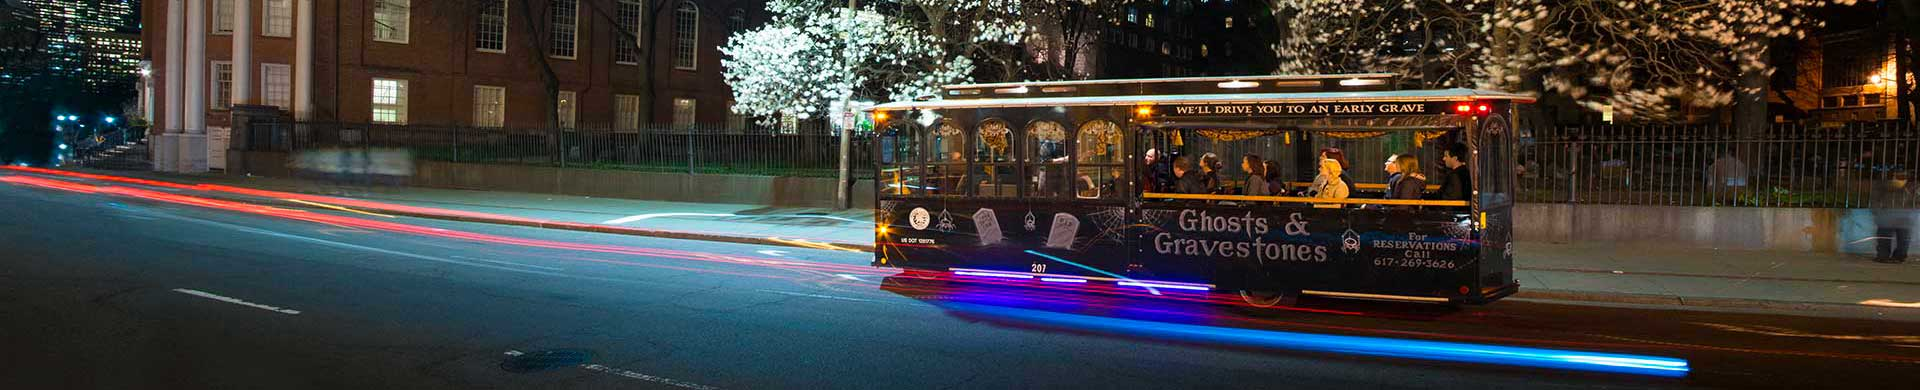 boston ghost tour trolley at night